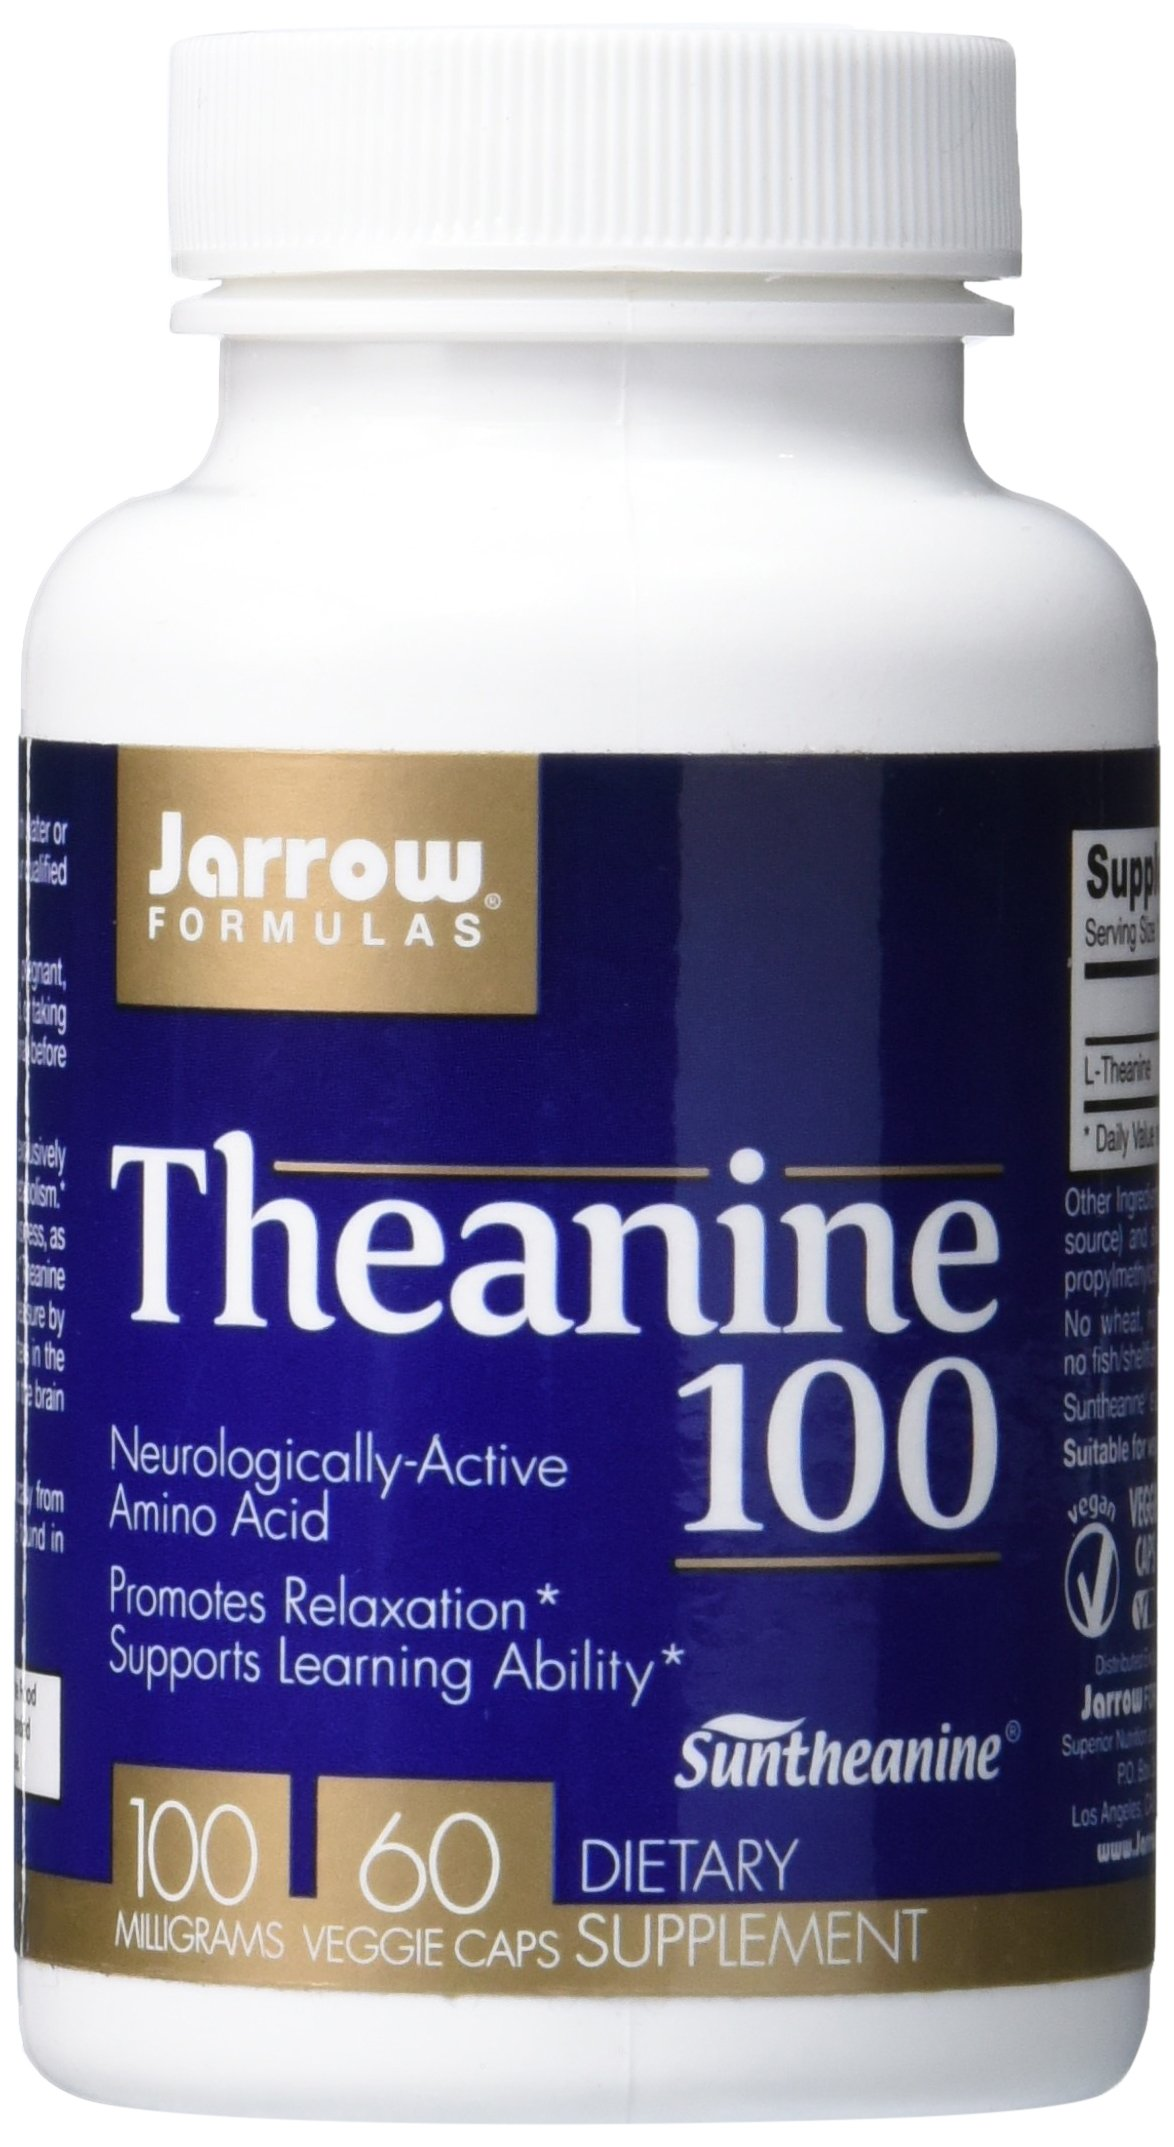 Jarrow Formulas Theanine , Promotes Relaxation, 100 mg, 60 Caps